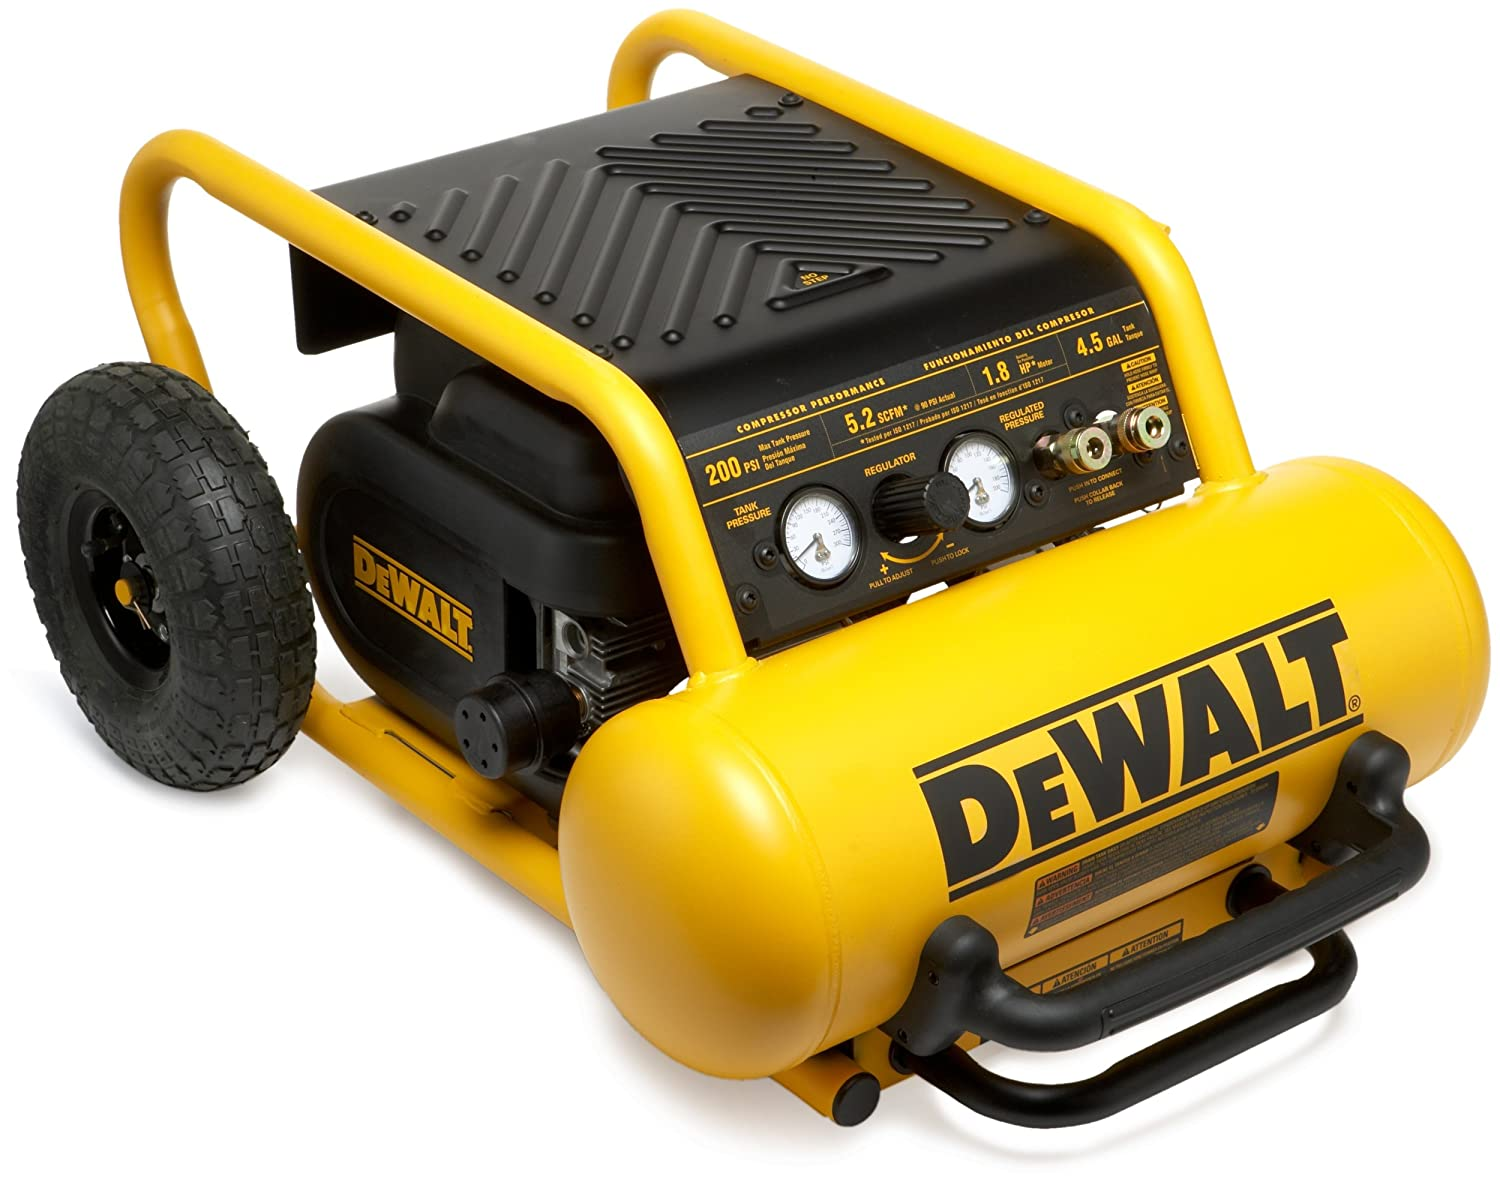 DEWALT D55146R Heavy Duty 4.5 Gallon Compressor with Wheels (Certified Refurbished)